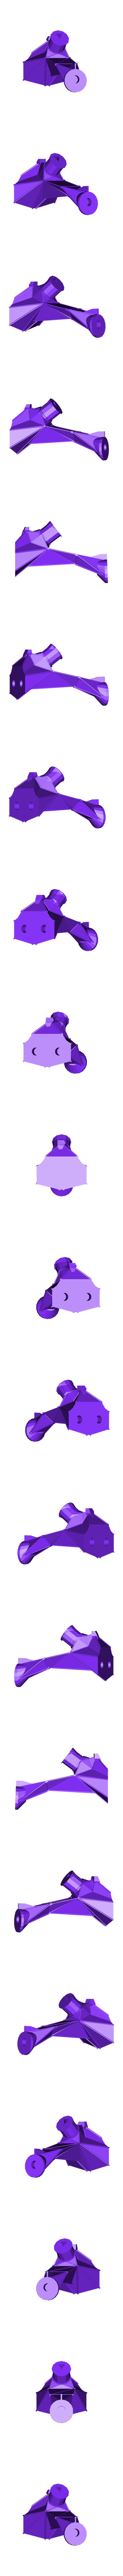 arm_left_01.stl Download free STL file Voyager • 3D printable template, spac3D